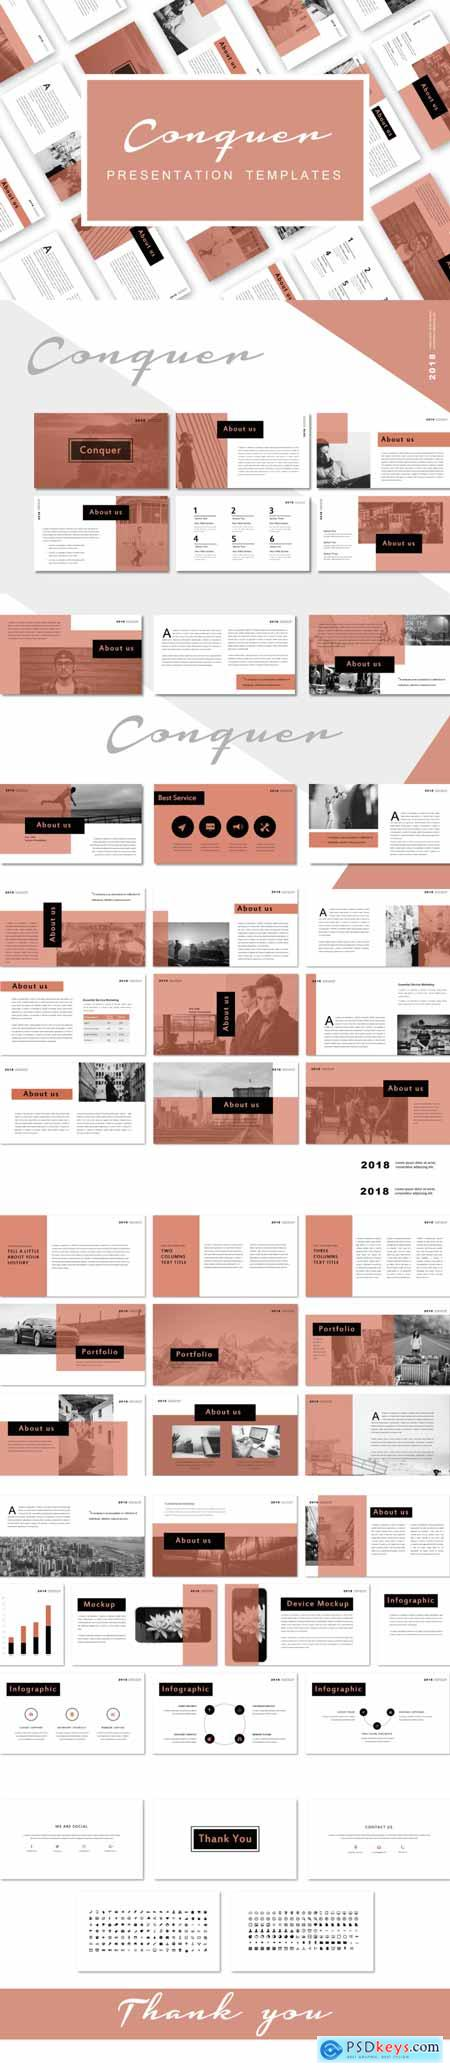 Conquer - PowerPoint 3501908